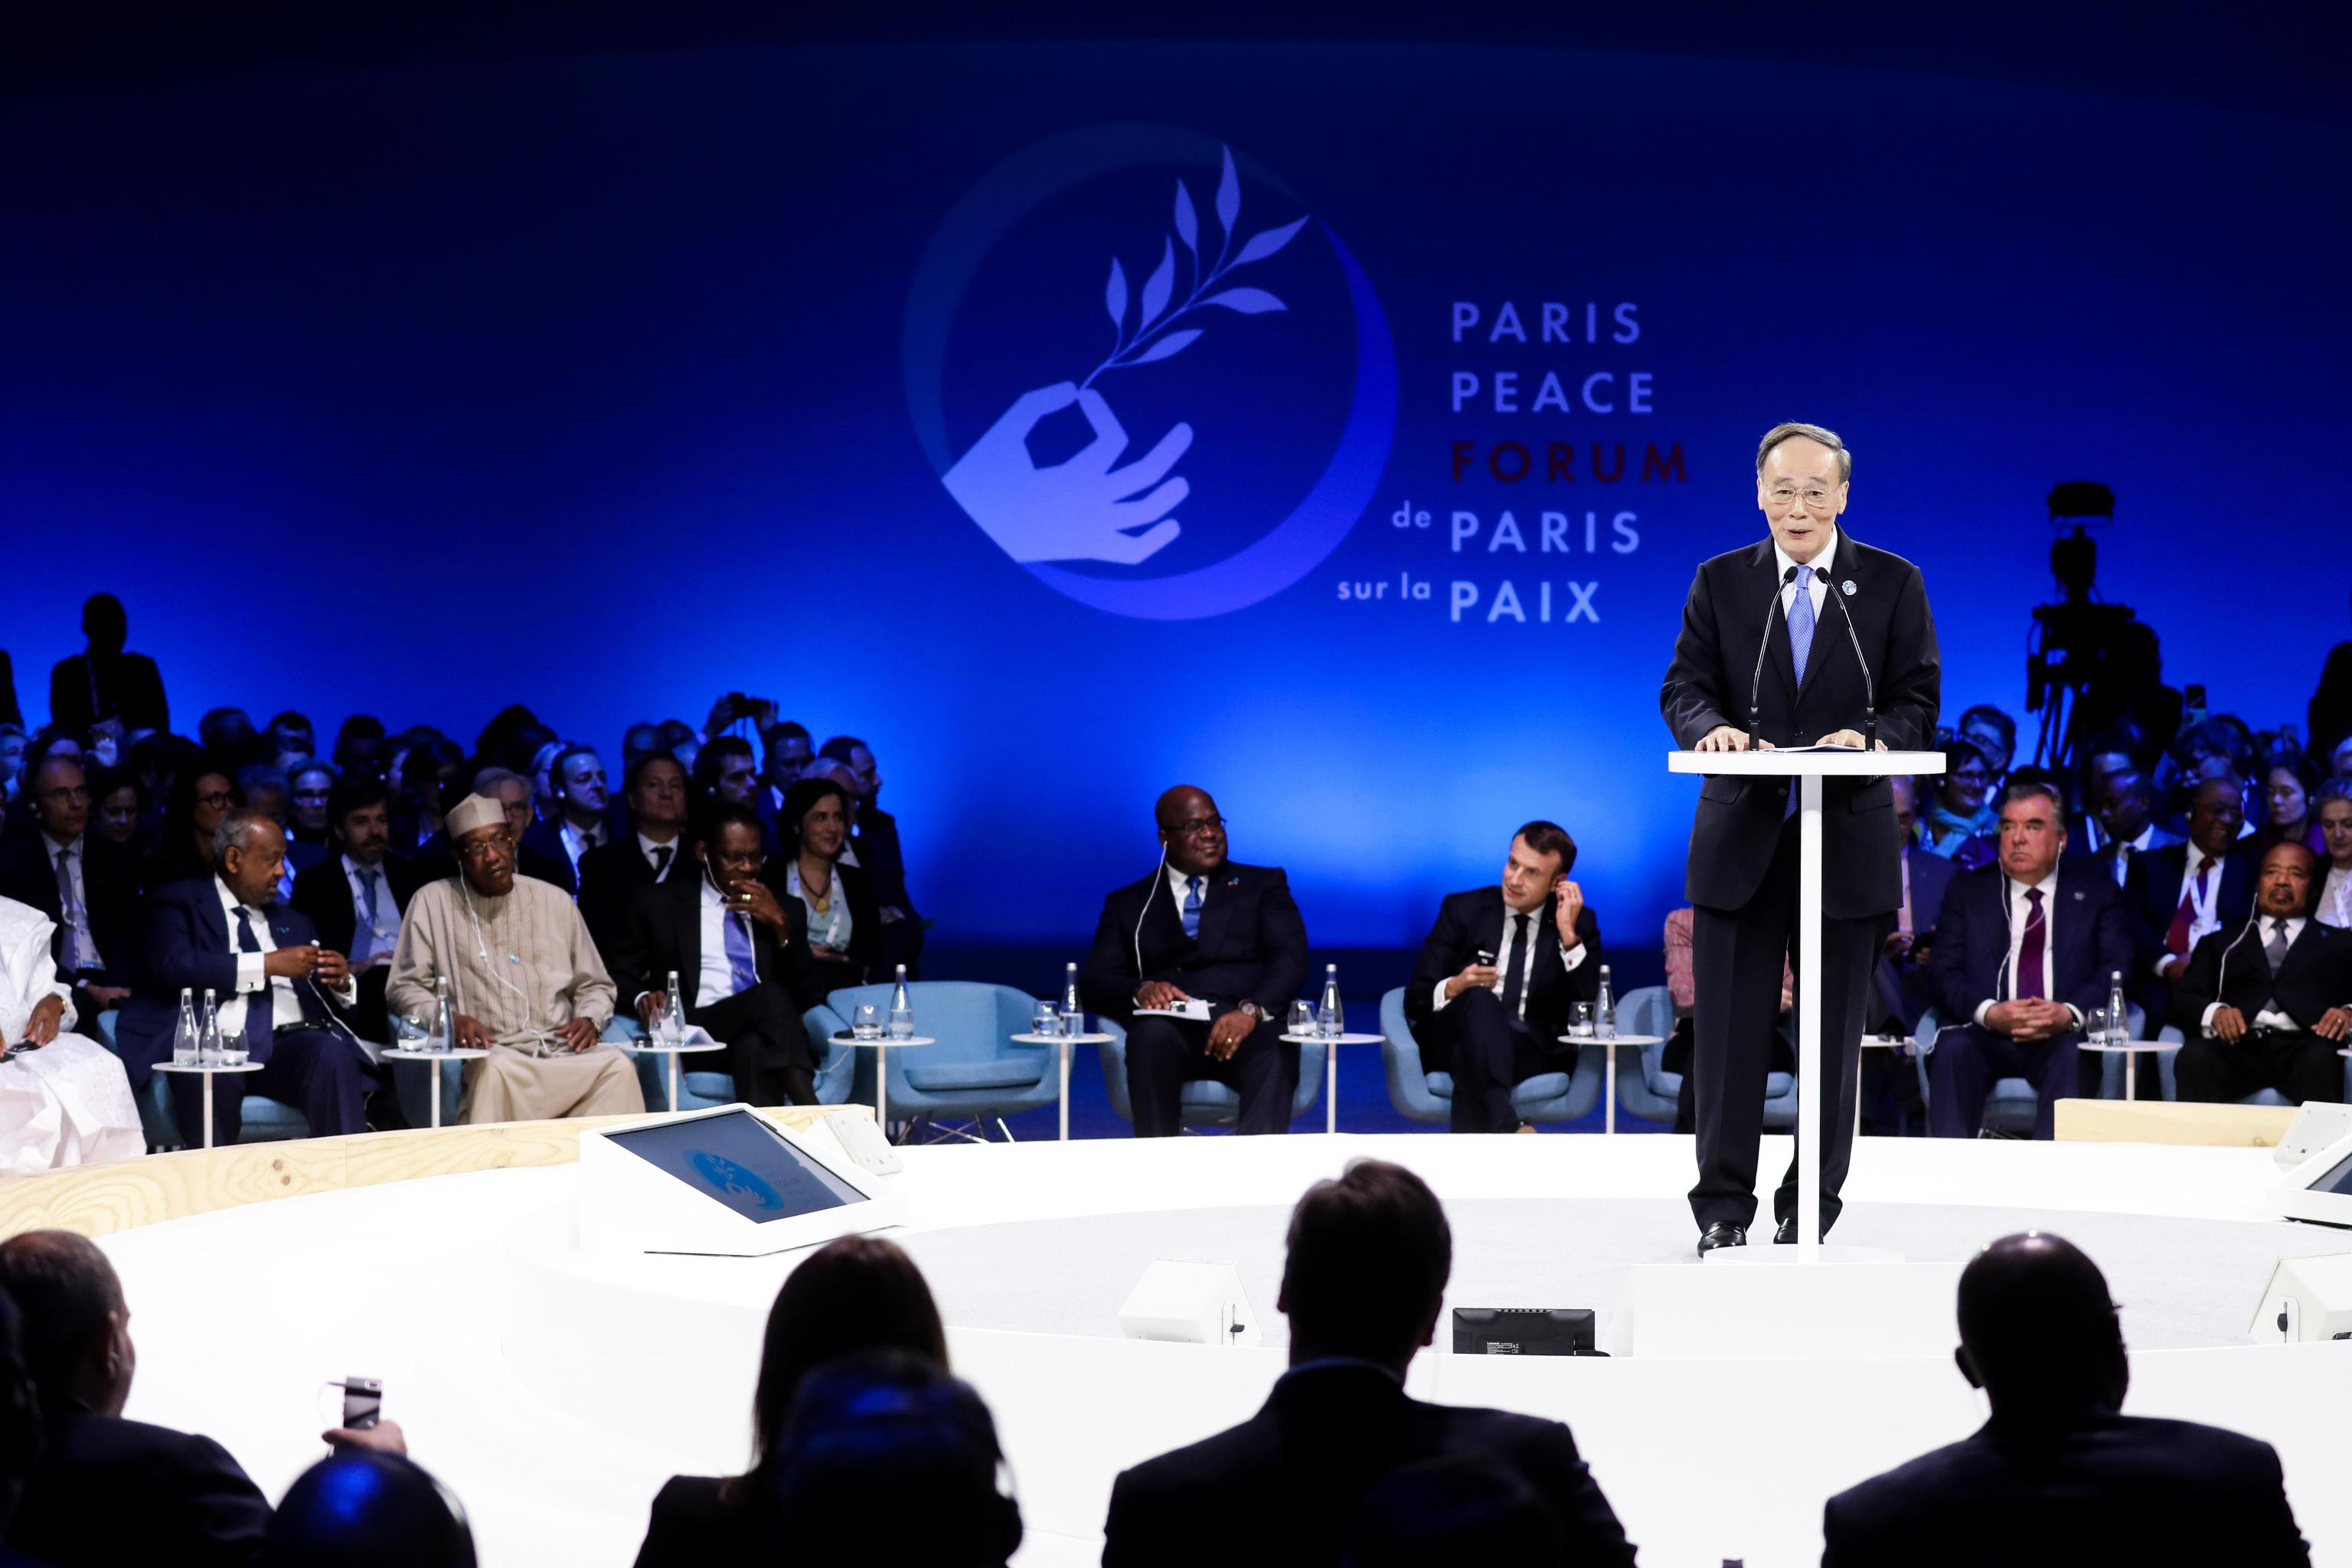 epa07990257 China's Vice President Wang Qishan delivers a speech during the plenary session of the Paris Peace Forum, in Paris, France, 12 November 2019. The international event on global governance issues and multilateralism takes place on 12 to 13 November in Paris.  EPA/LUDOVIC MARIN / POOL MAXPPP OUT